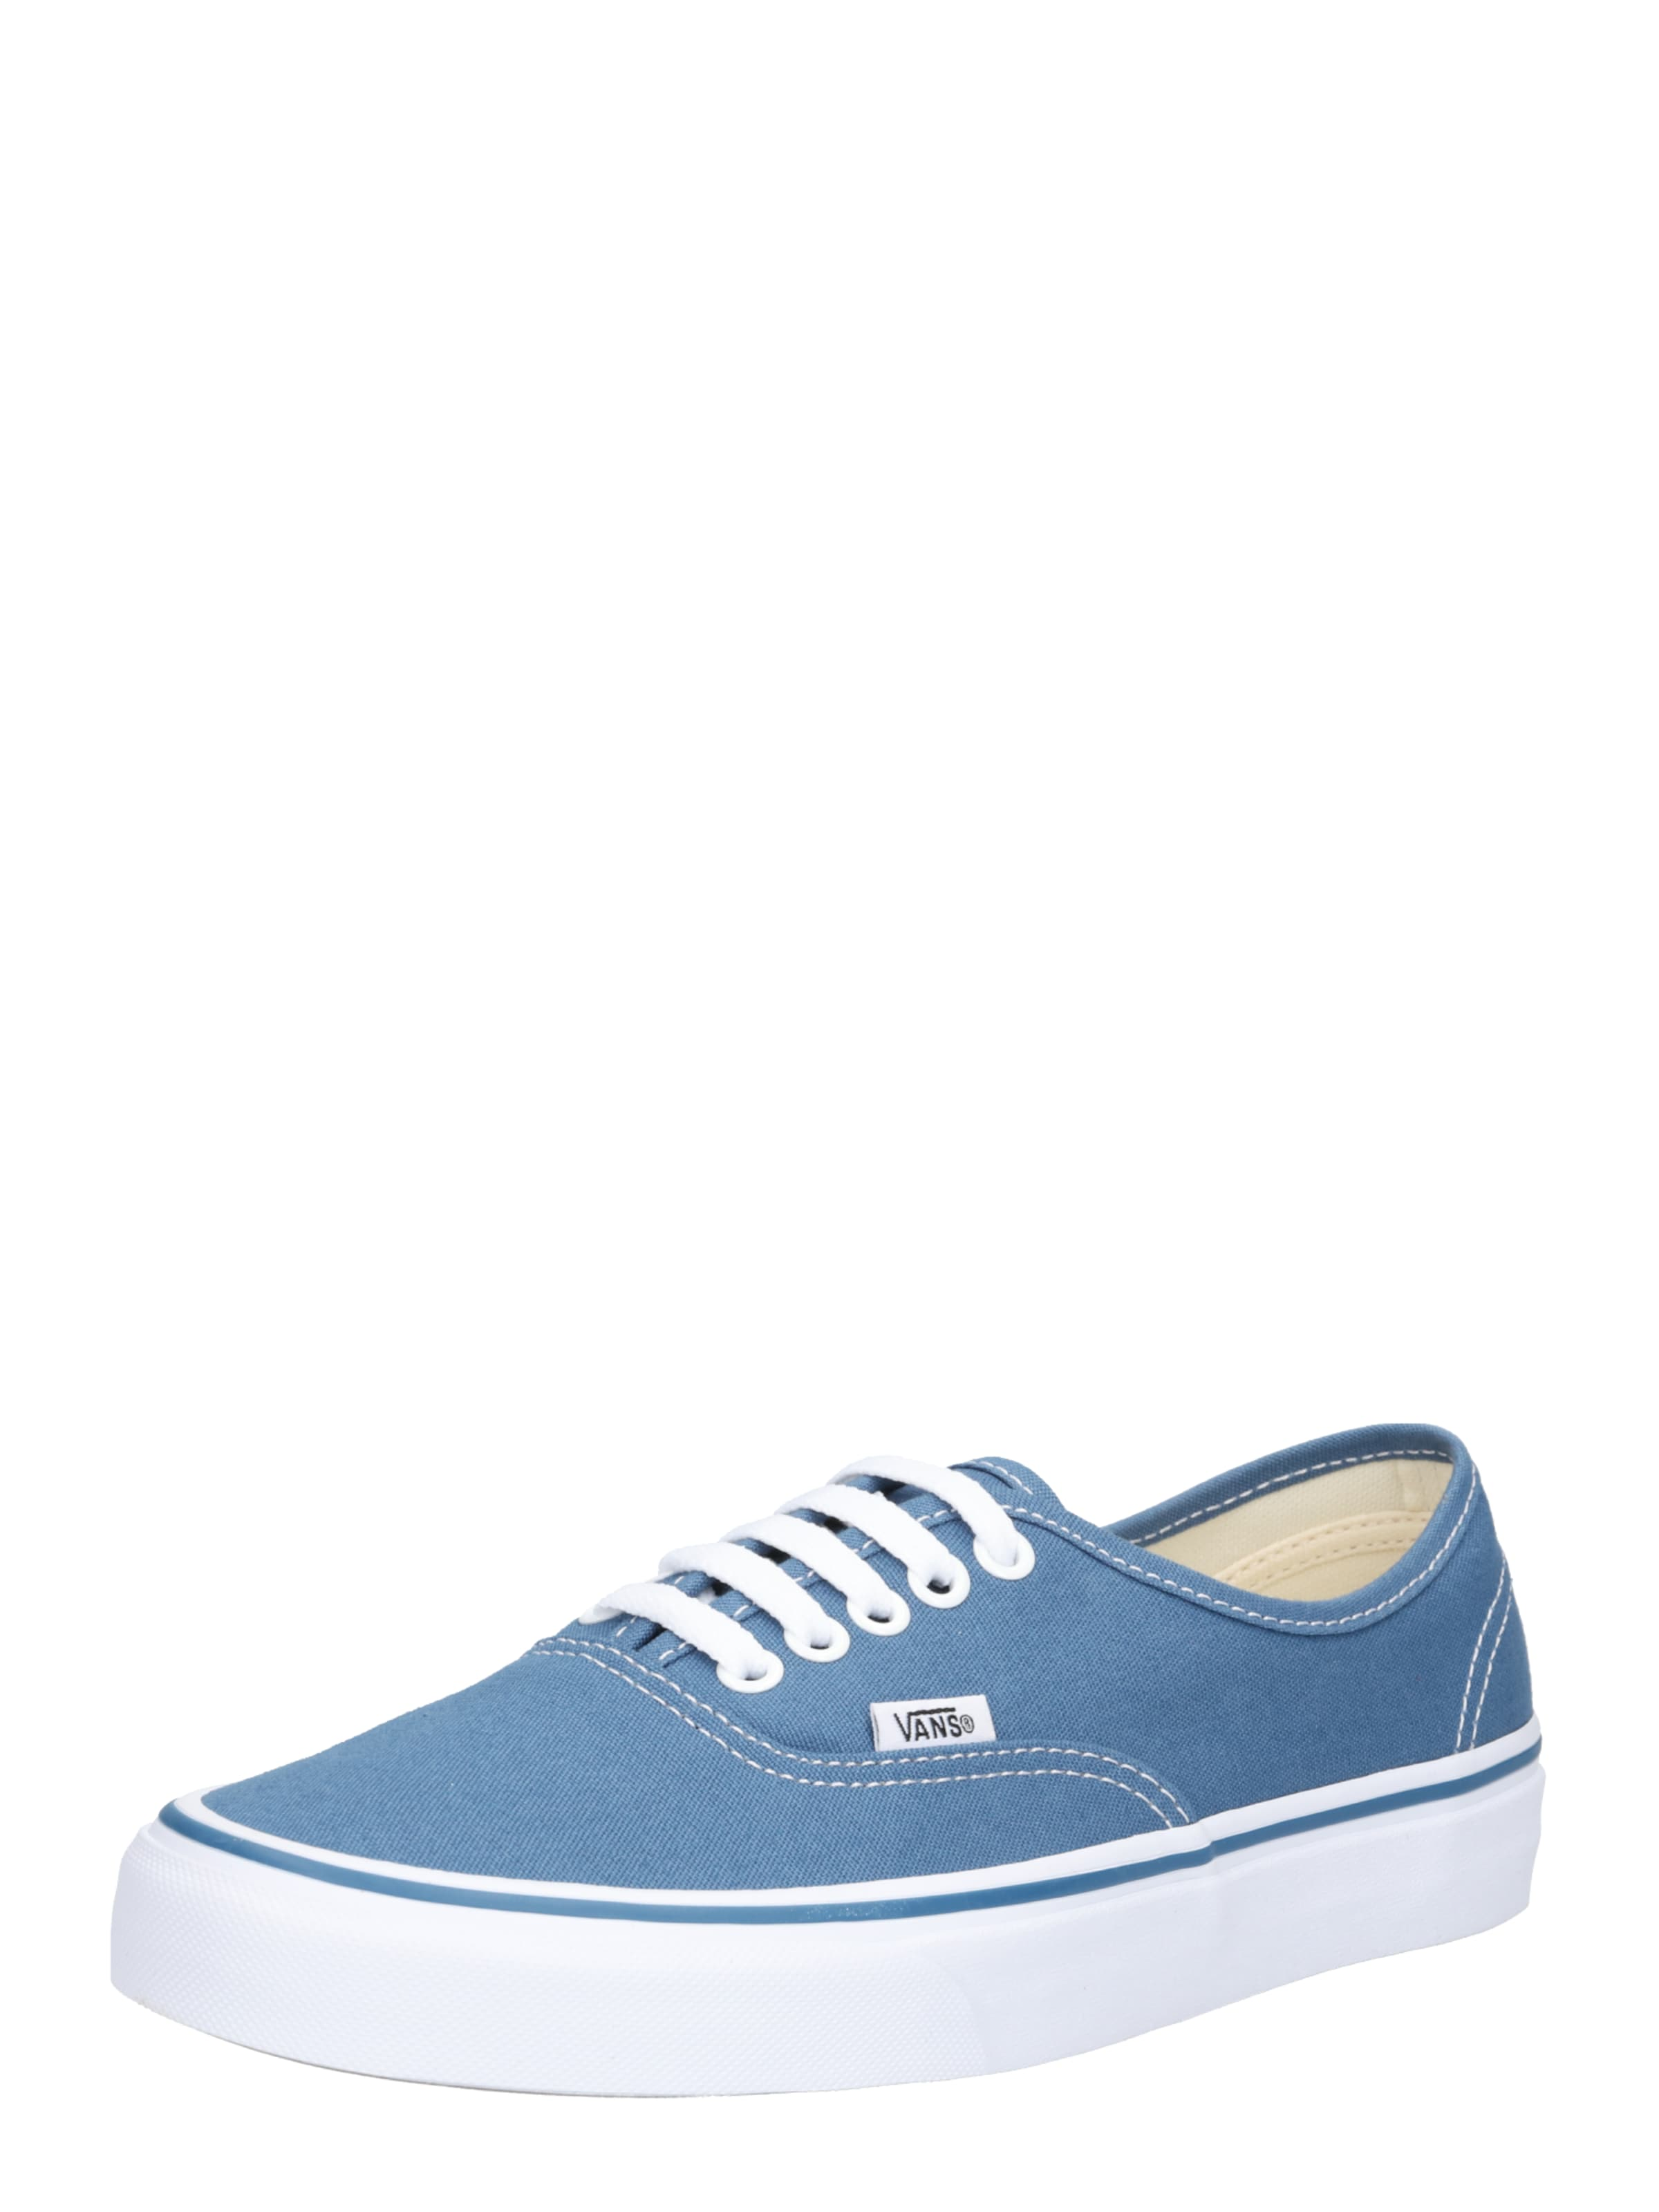 Vans Sneaker In 'authentic' Navy tsrQhd